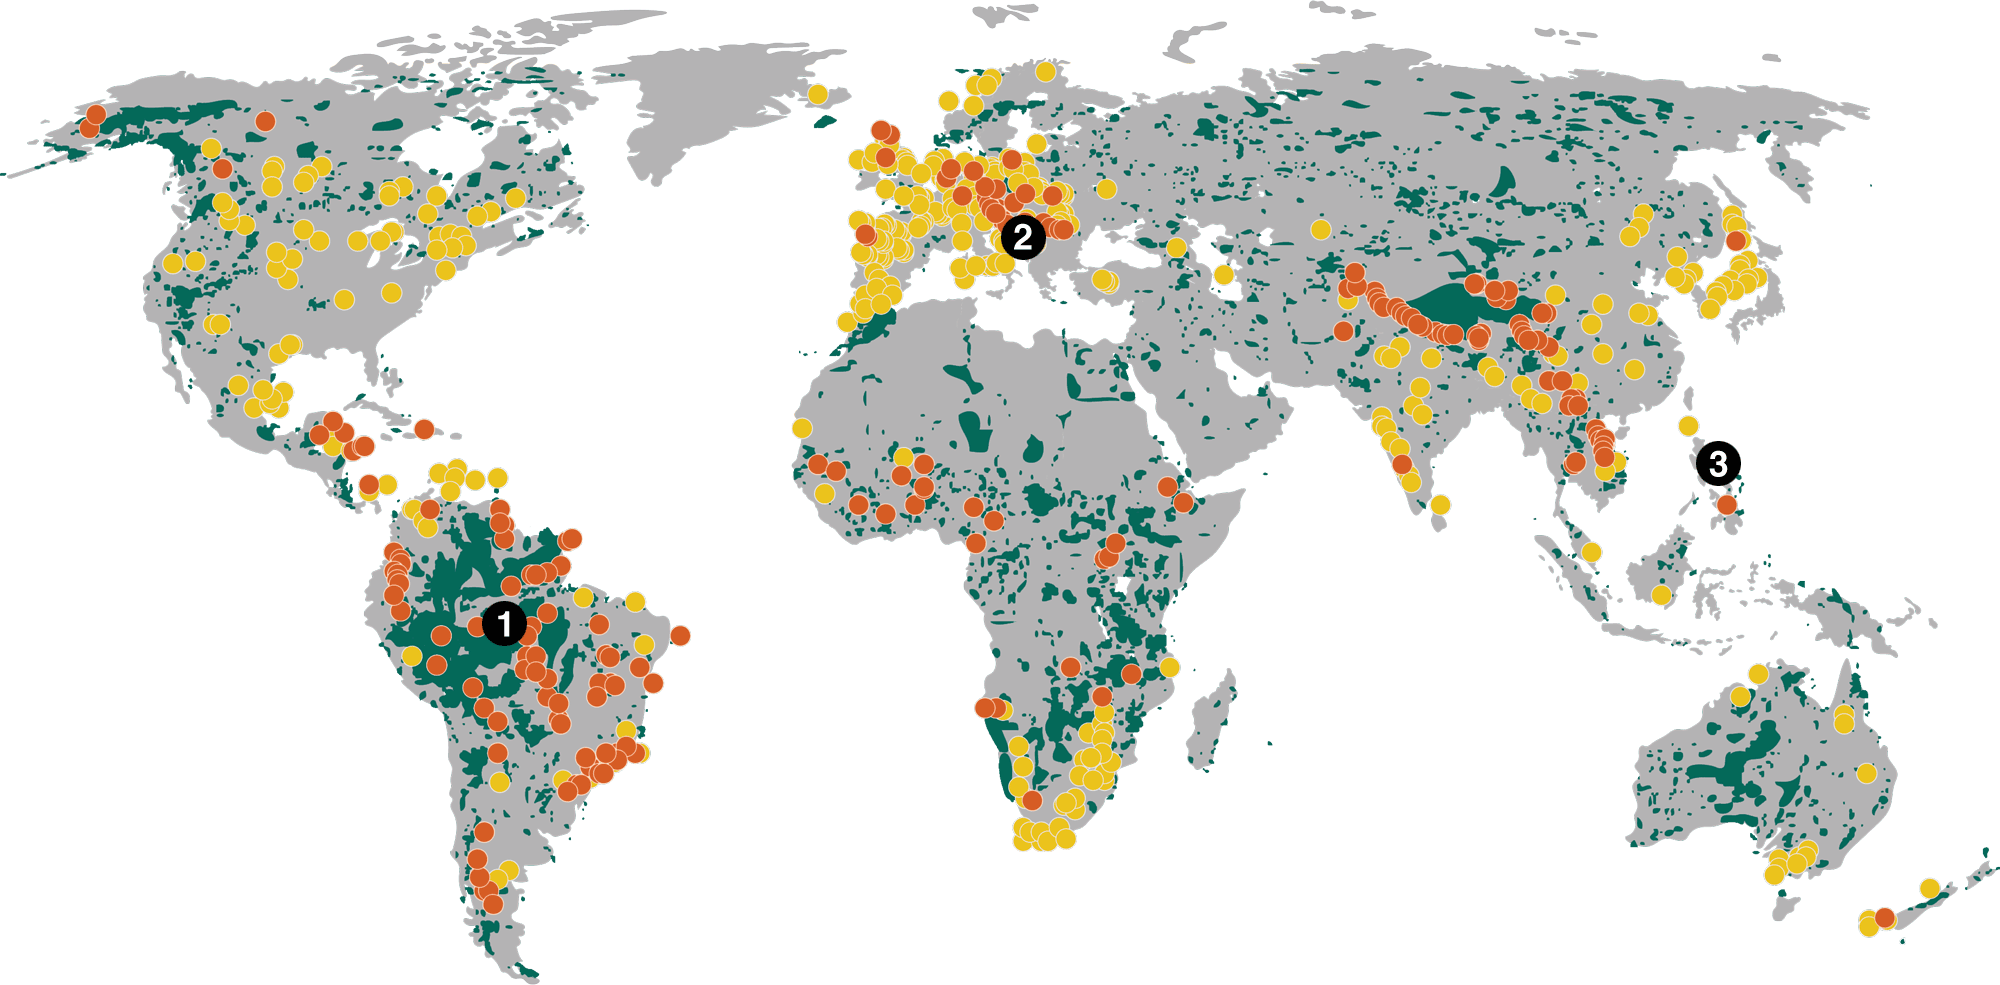 Map of world showing dams and protected areas